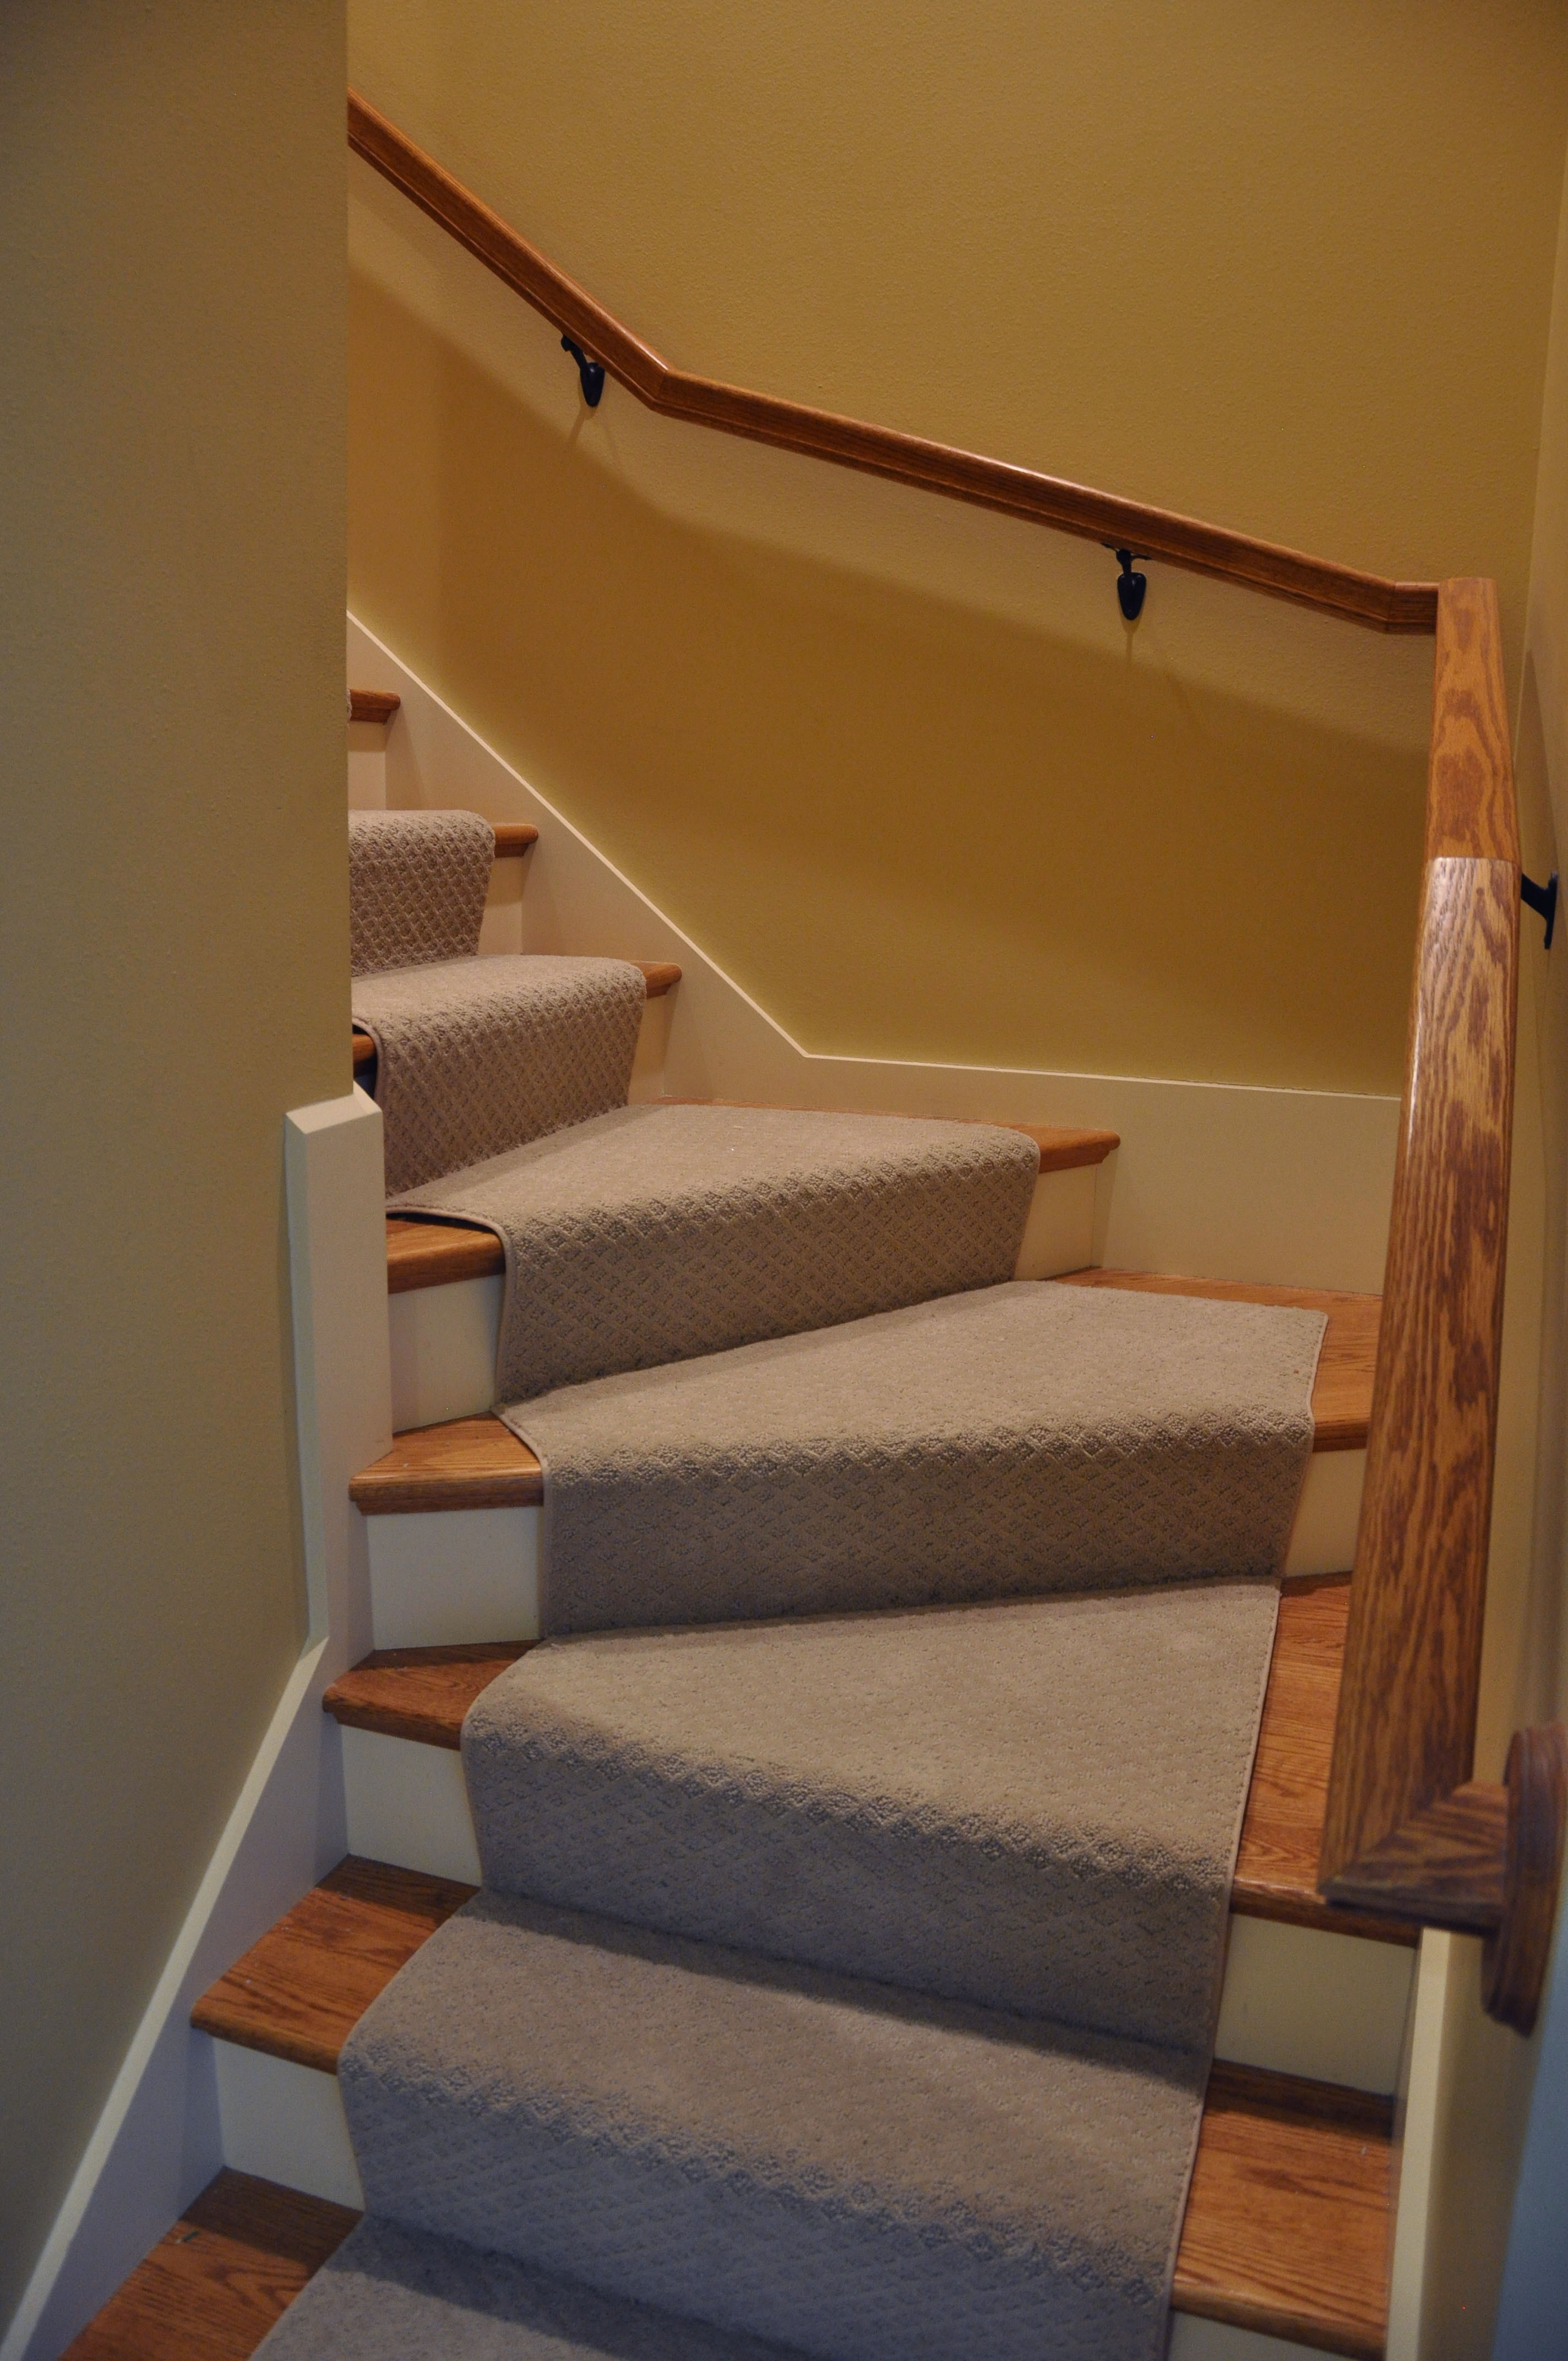 hardwood floor refinishing milwaukee of hardwood stair treads staircasing installation milwaukee wi with click image to enlarge